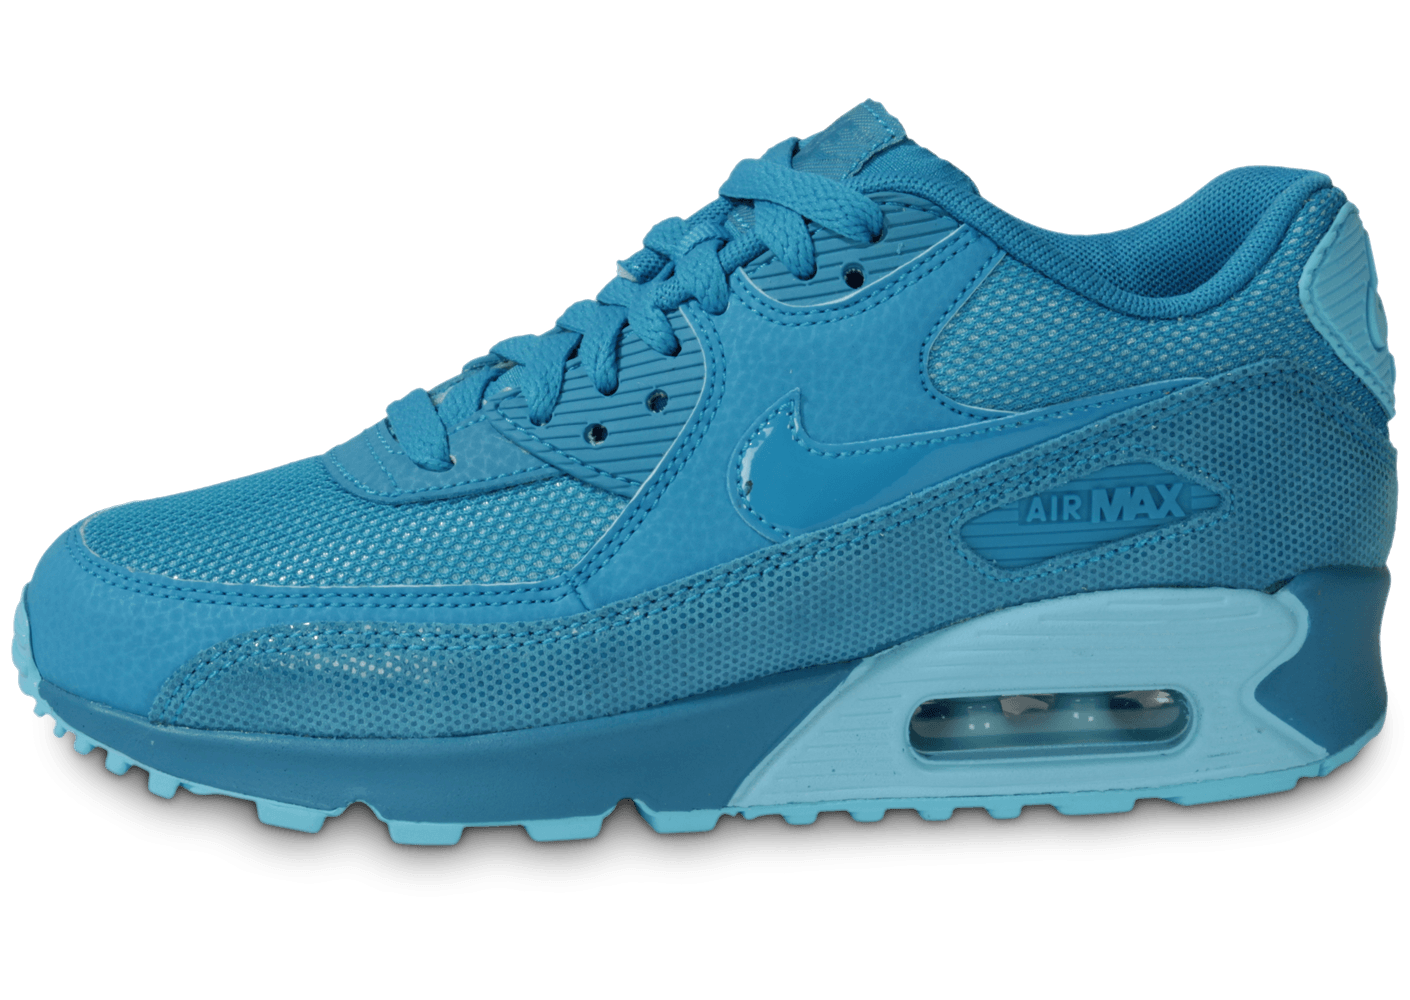 nike air max 90 premium light blue chaussures chaussures chausport. Black Bedroom Furniture Sets. Home Design Ideas